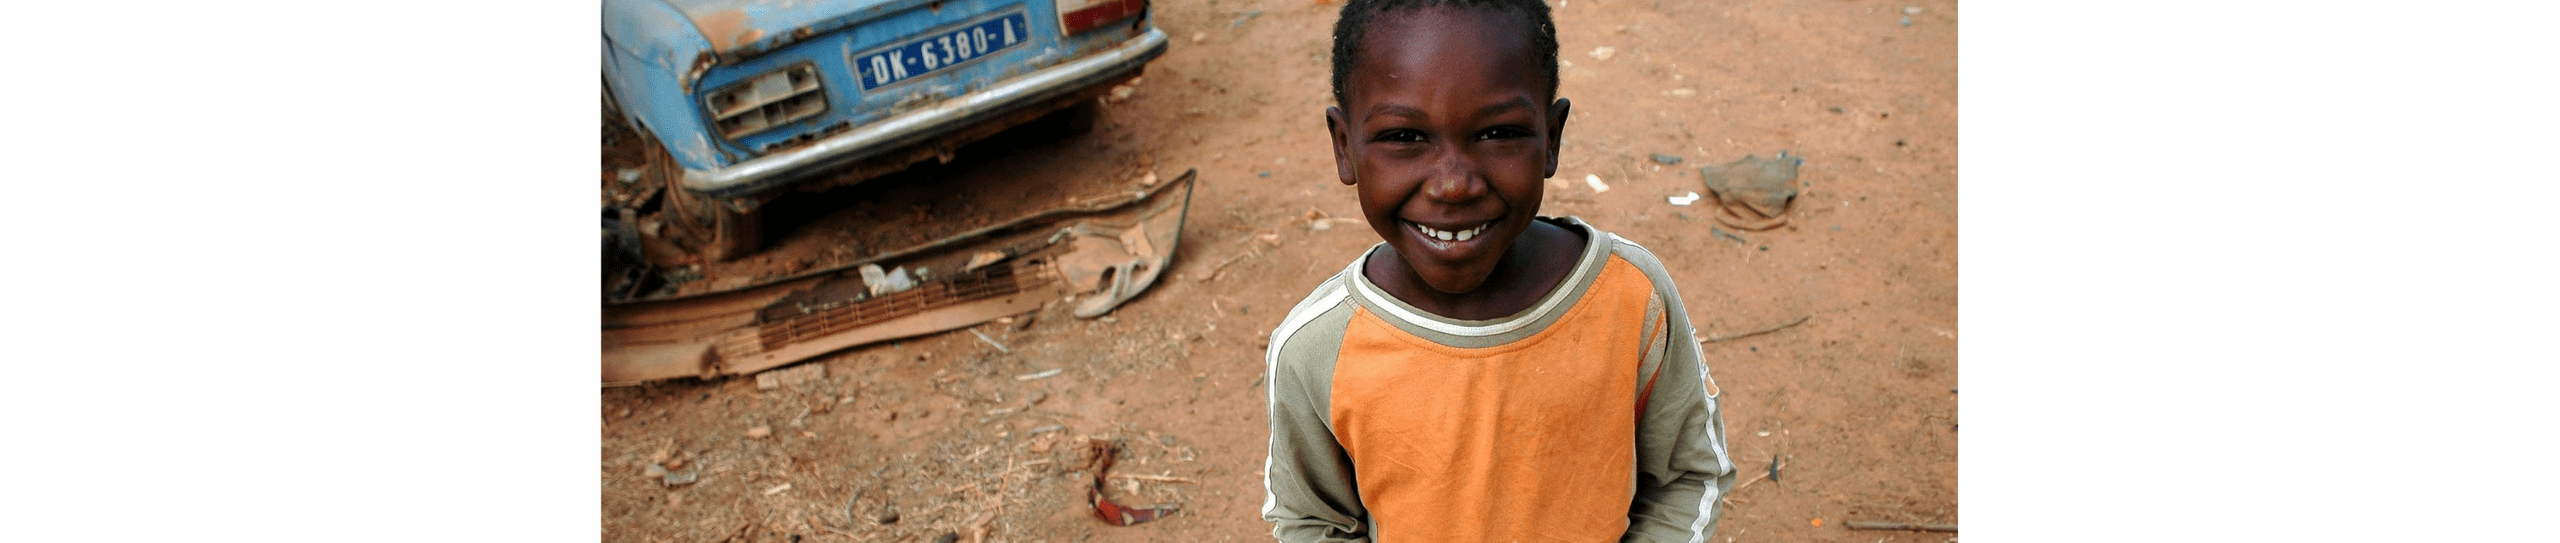 Image of boy from Senegal